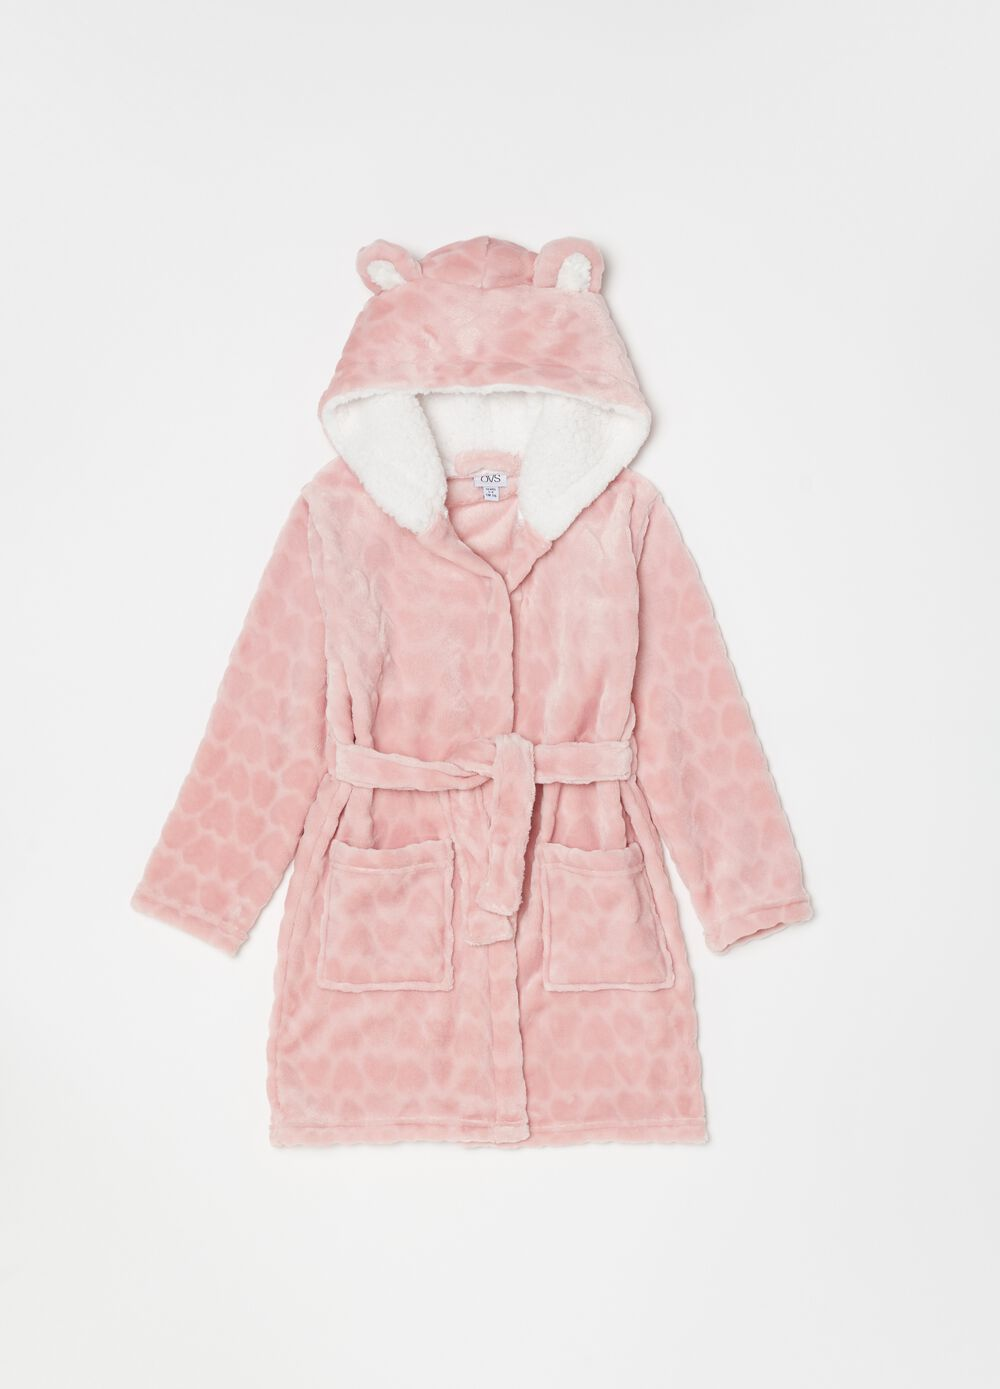 Chenille dressing gown with hearts and ears